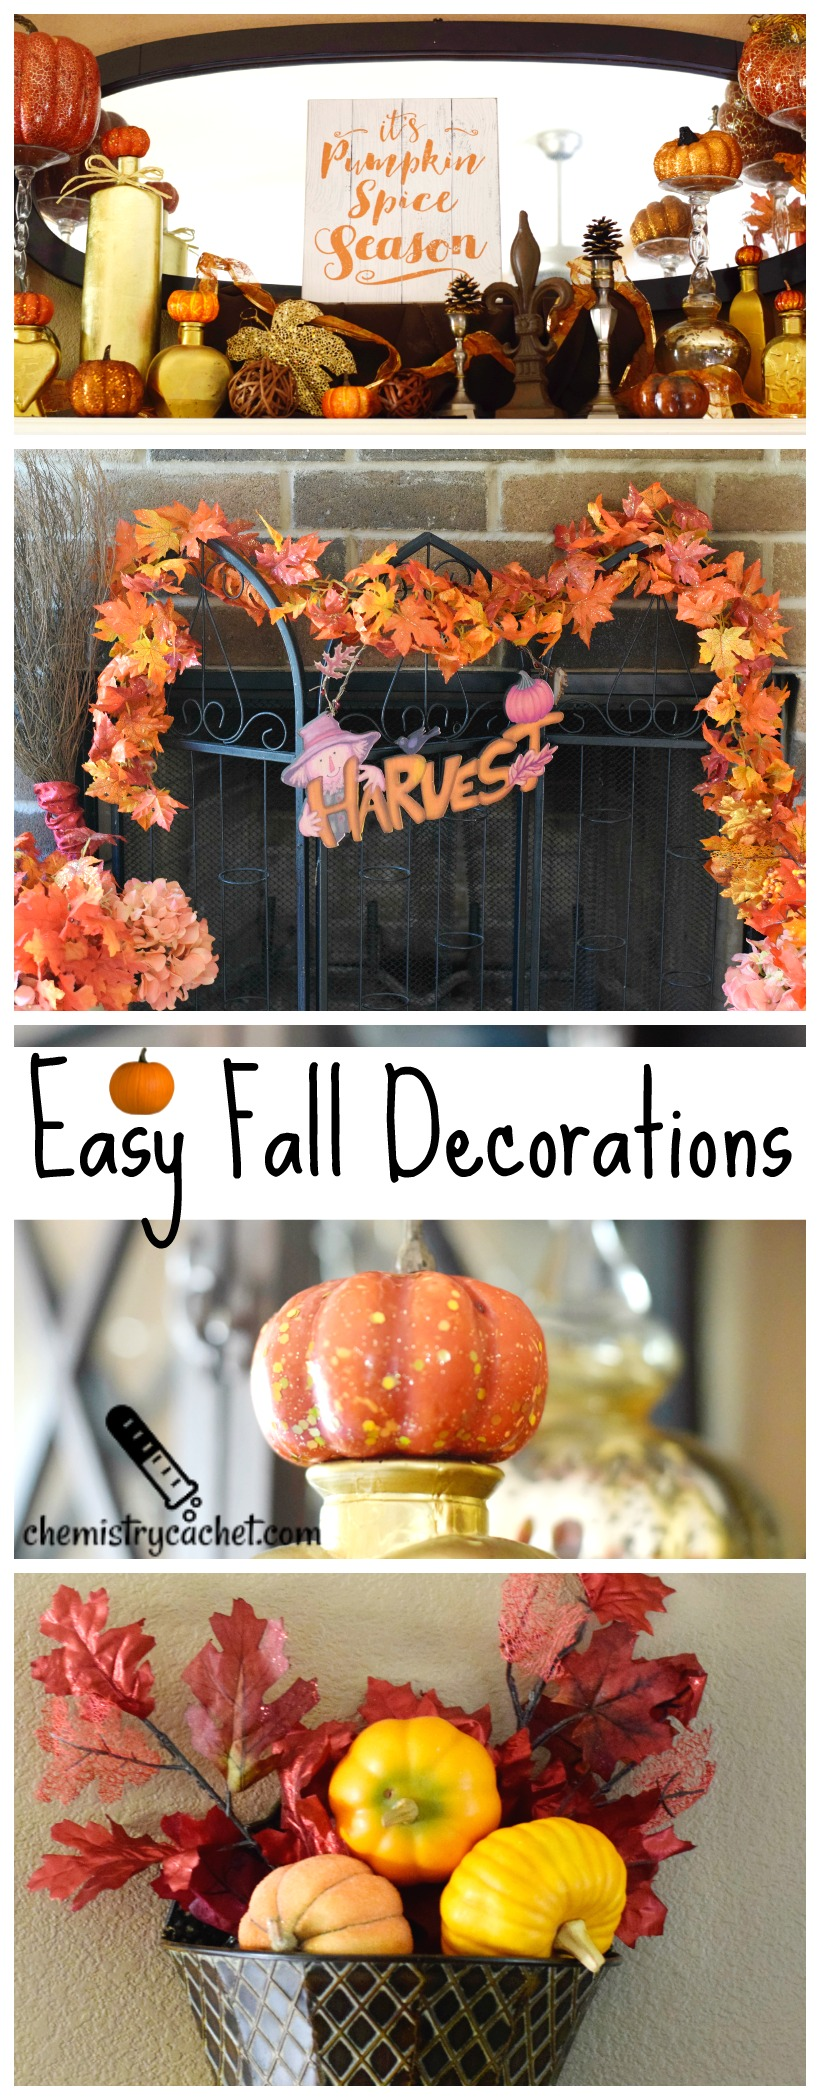 Easy Beautiful fall decorations on chemistrycachet.com